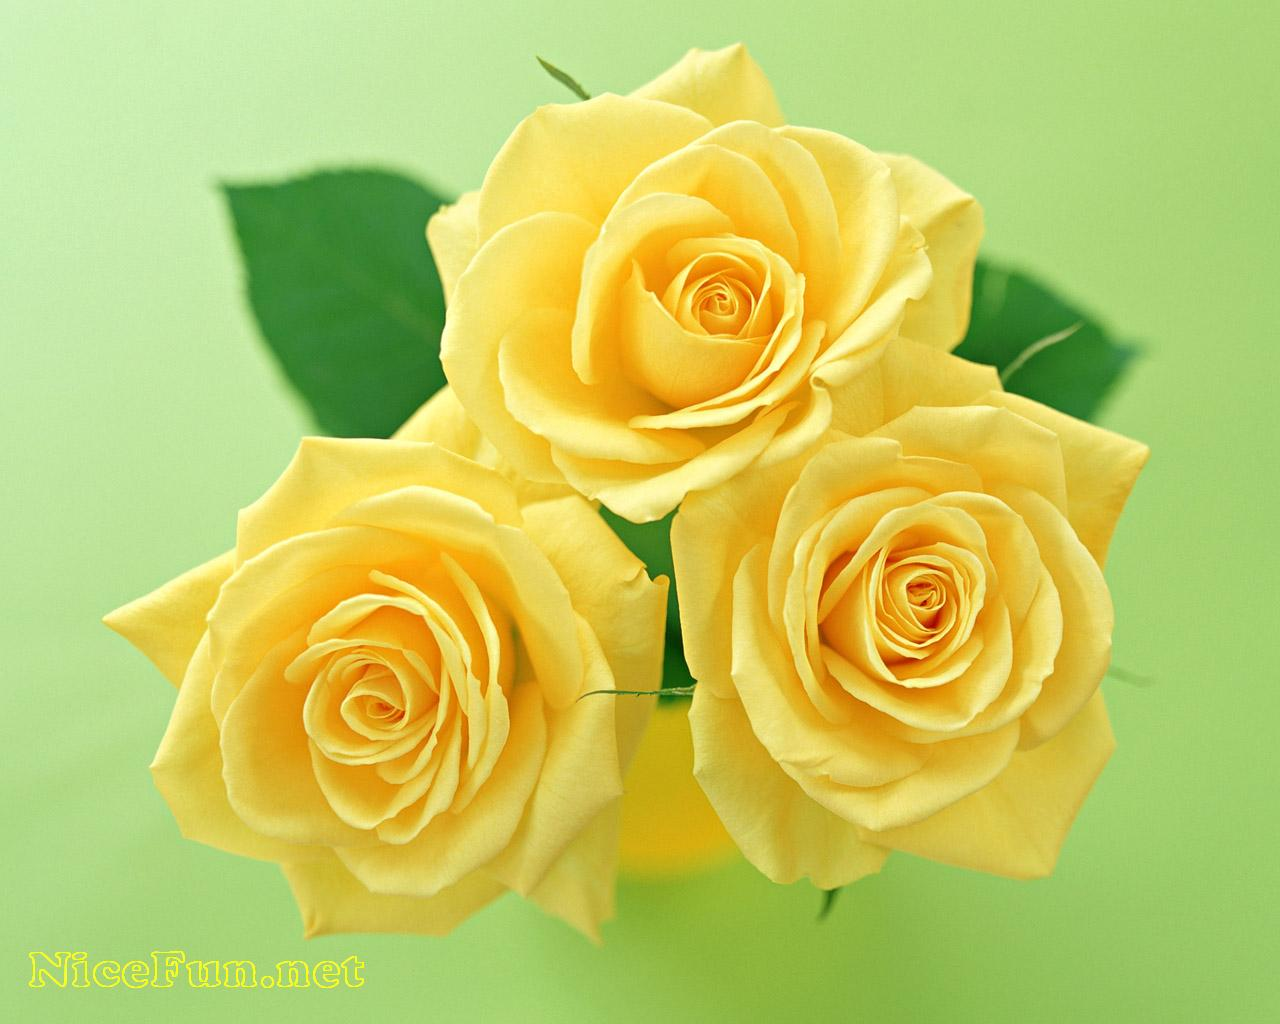 Cute Roses Pictures